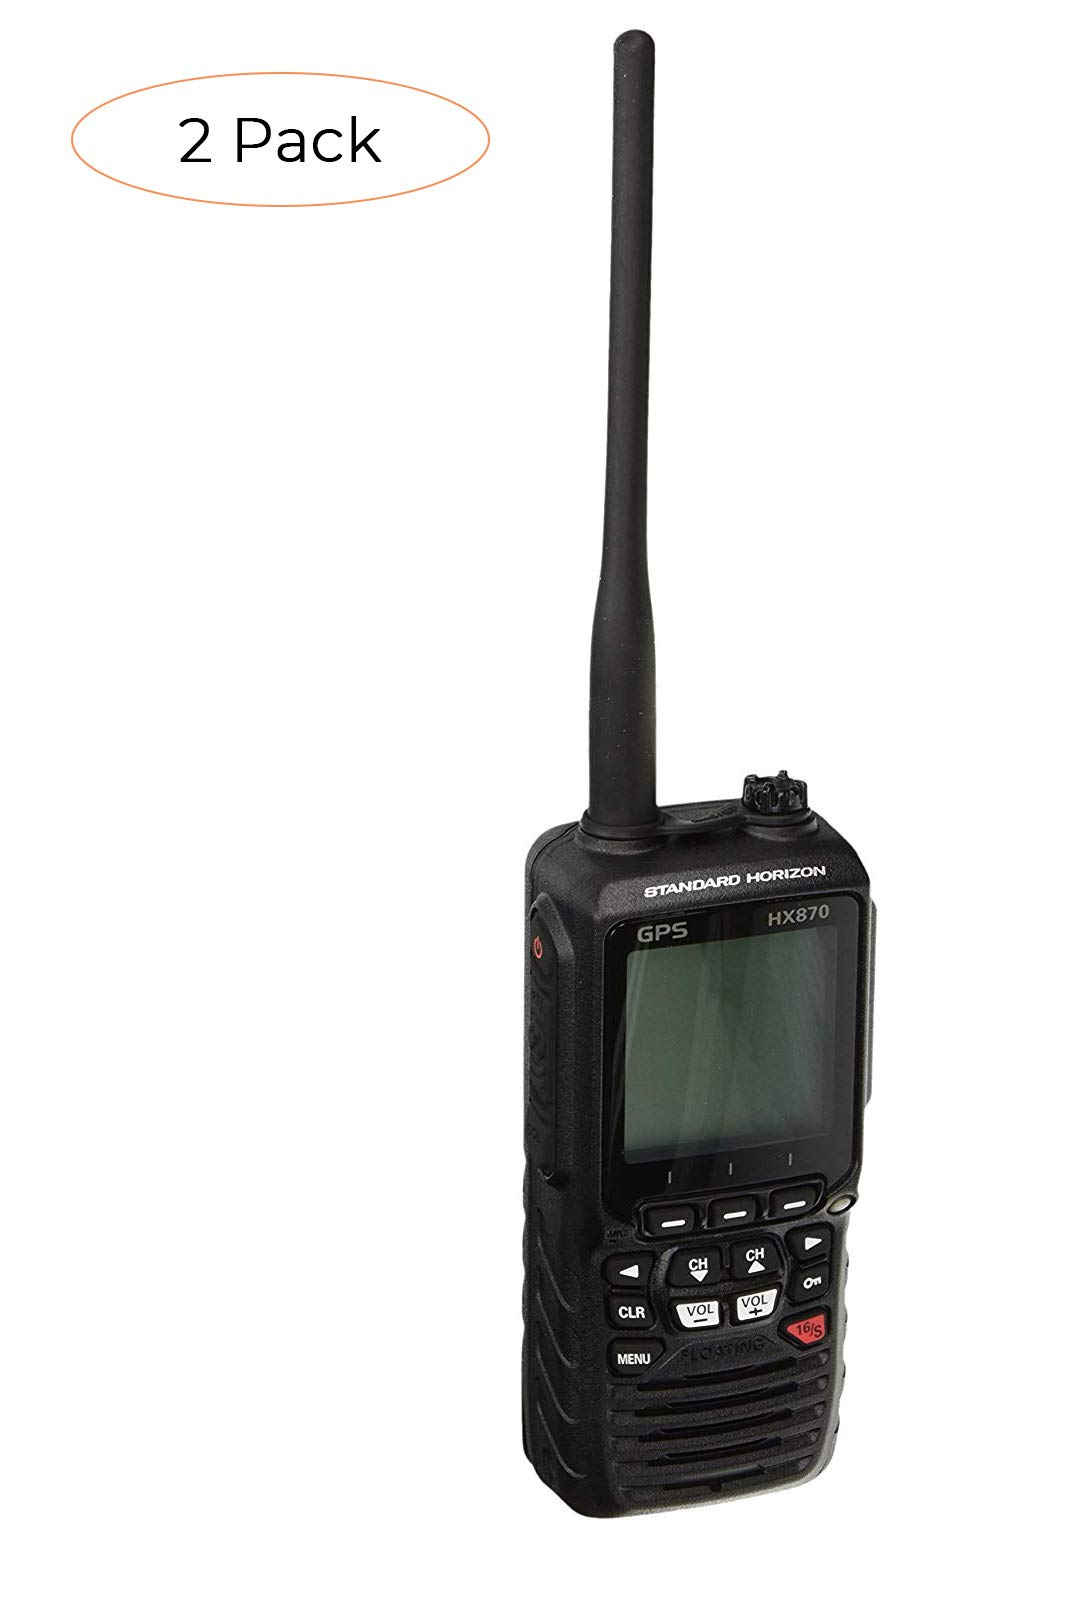 Standard Horizon HX870 Floating 6W Handheld VHF with Internal GPS (Twо Расk) by STANDARD HORIZON